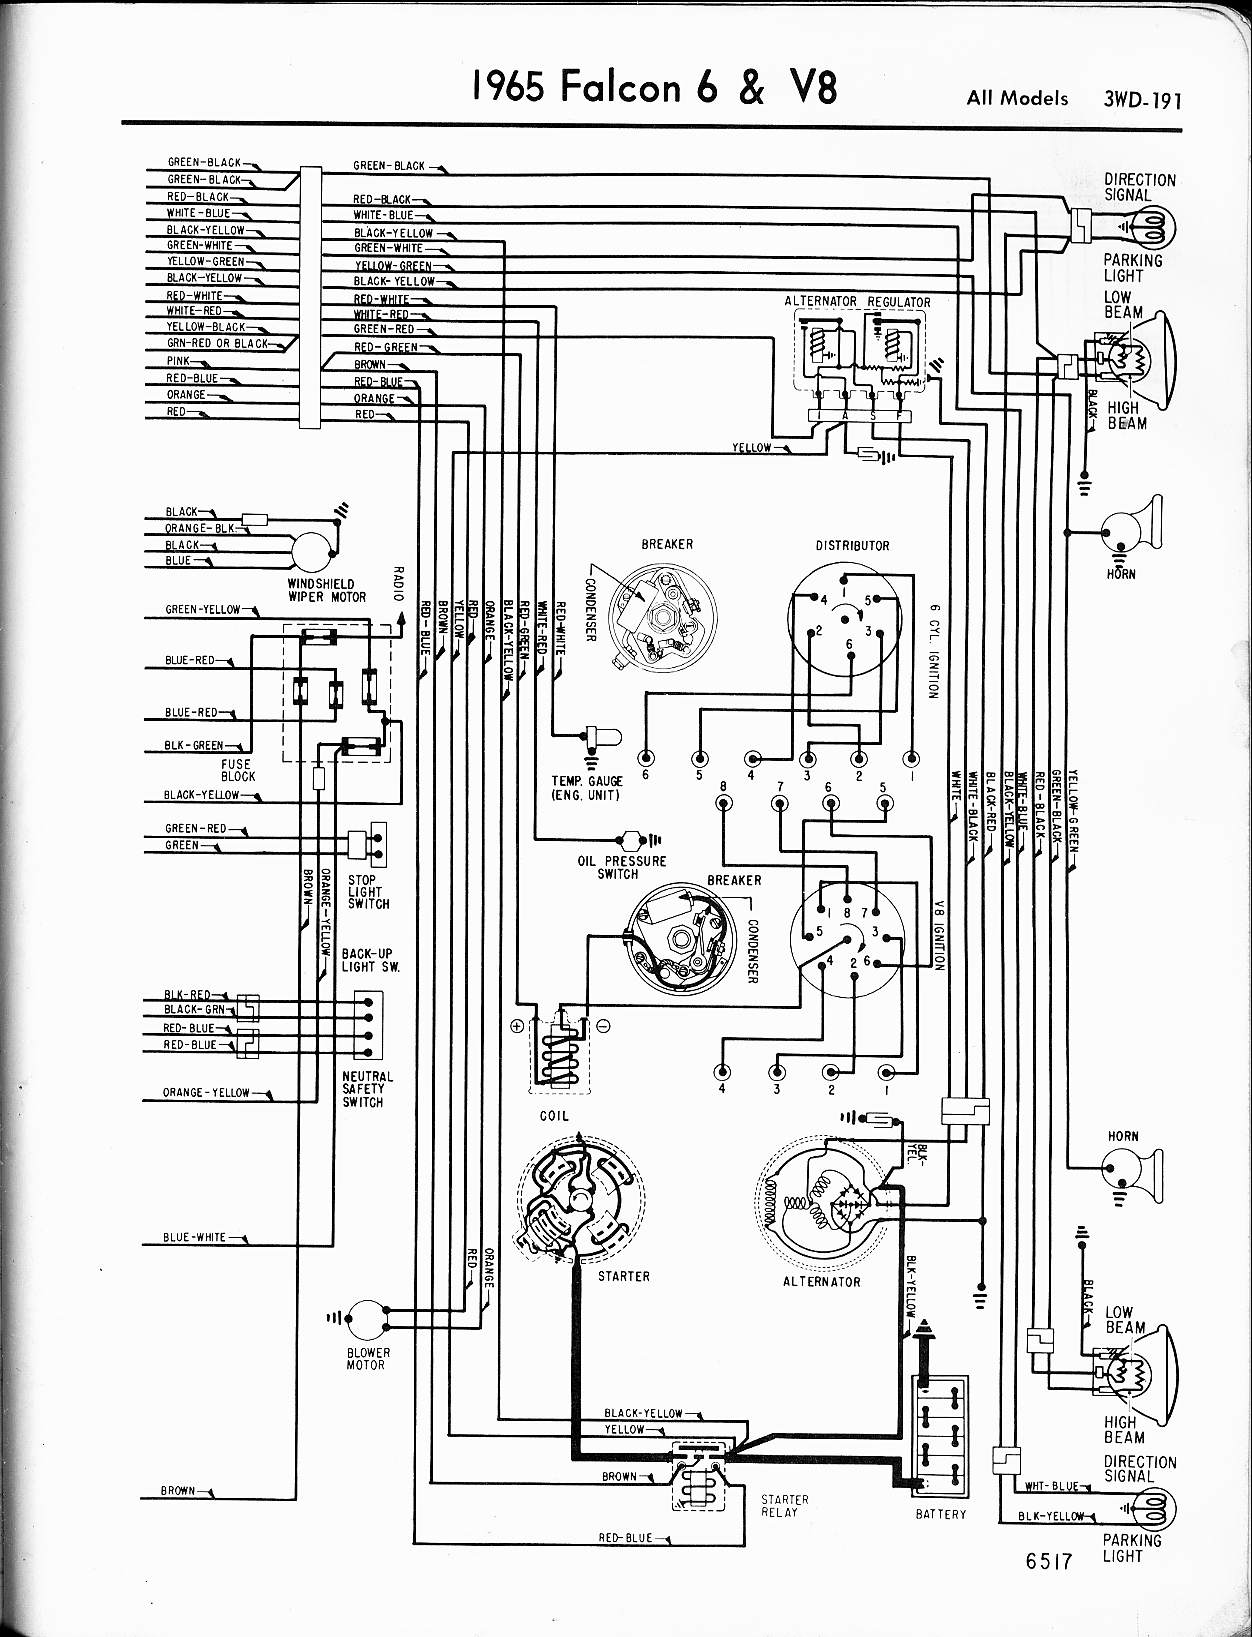 57 65 Ford Wiring Diagrams 1959 Starter Solenoid 1965 6 V8 Falcon Right